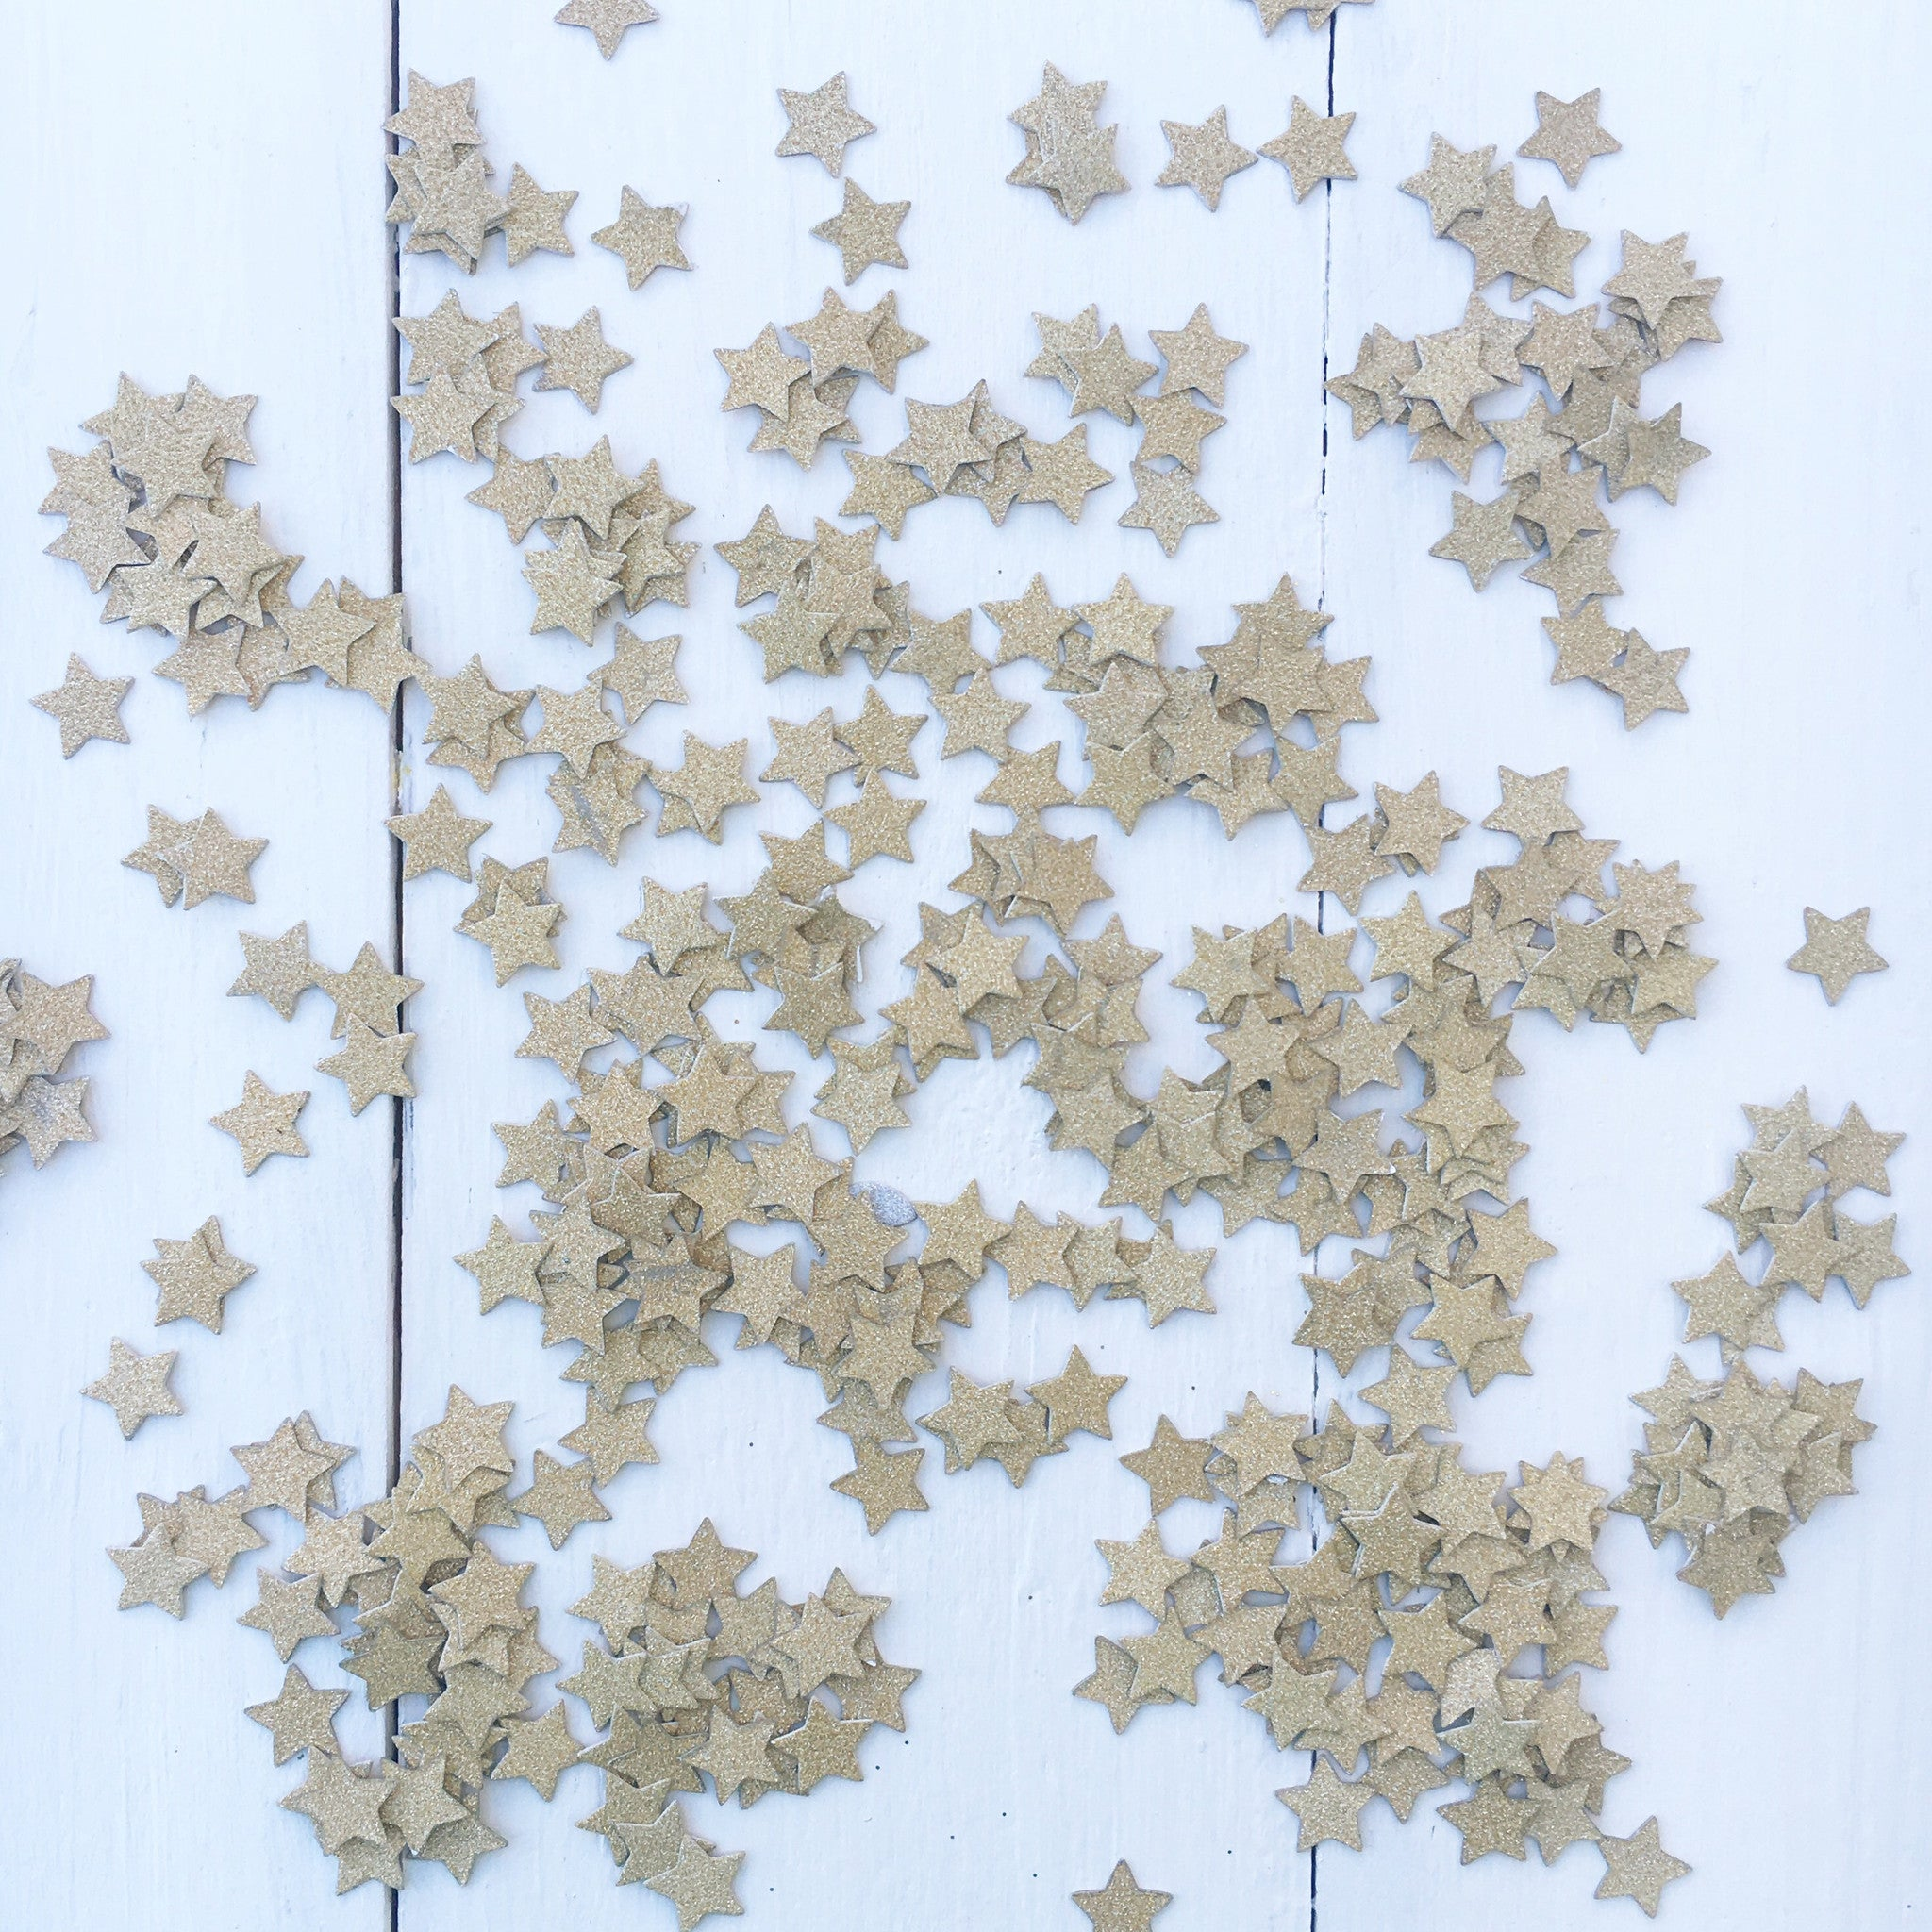 Gold Star Glitter Confetti - The Sweet Hostess  - 1